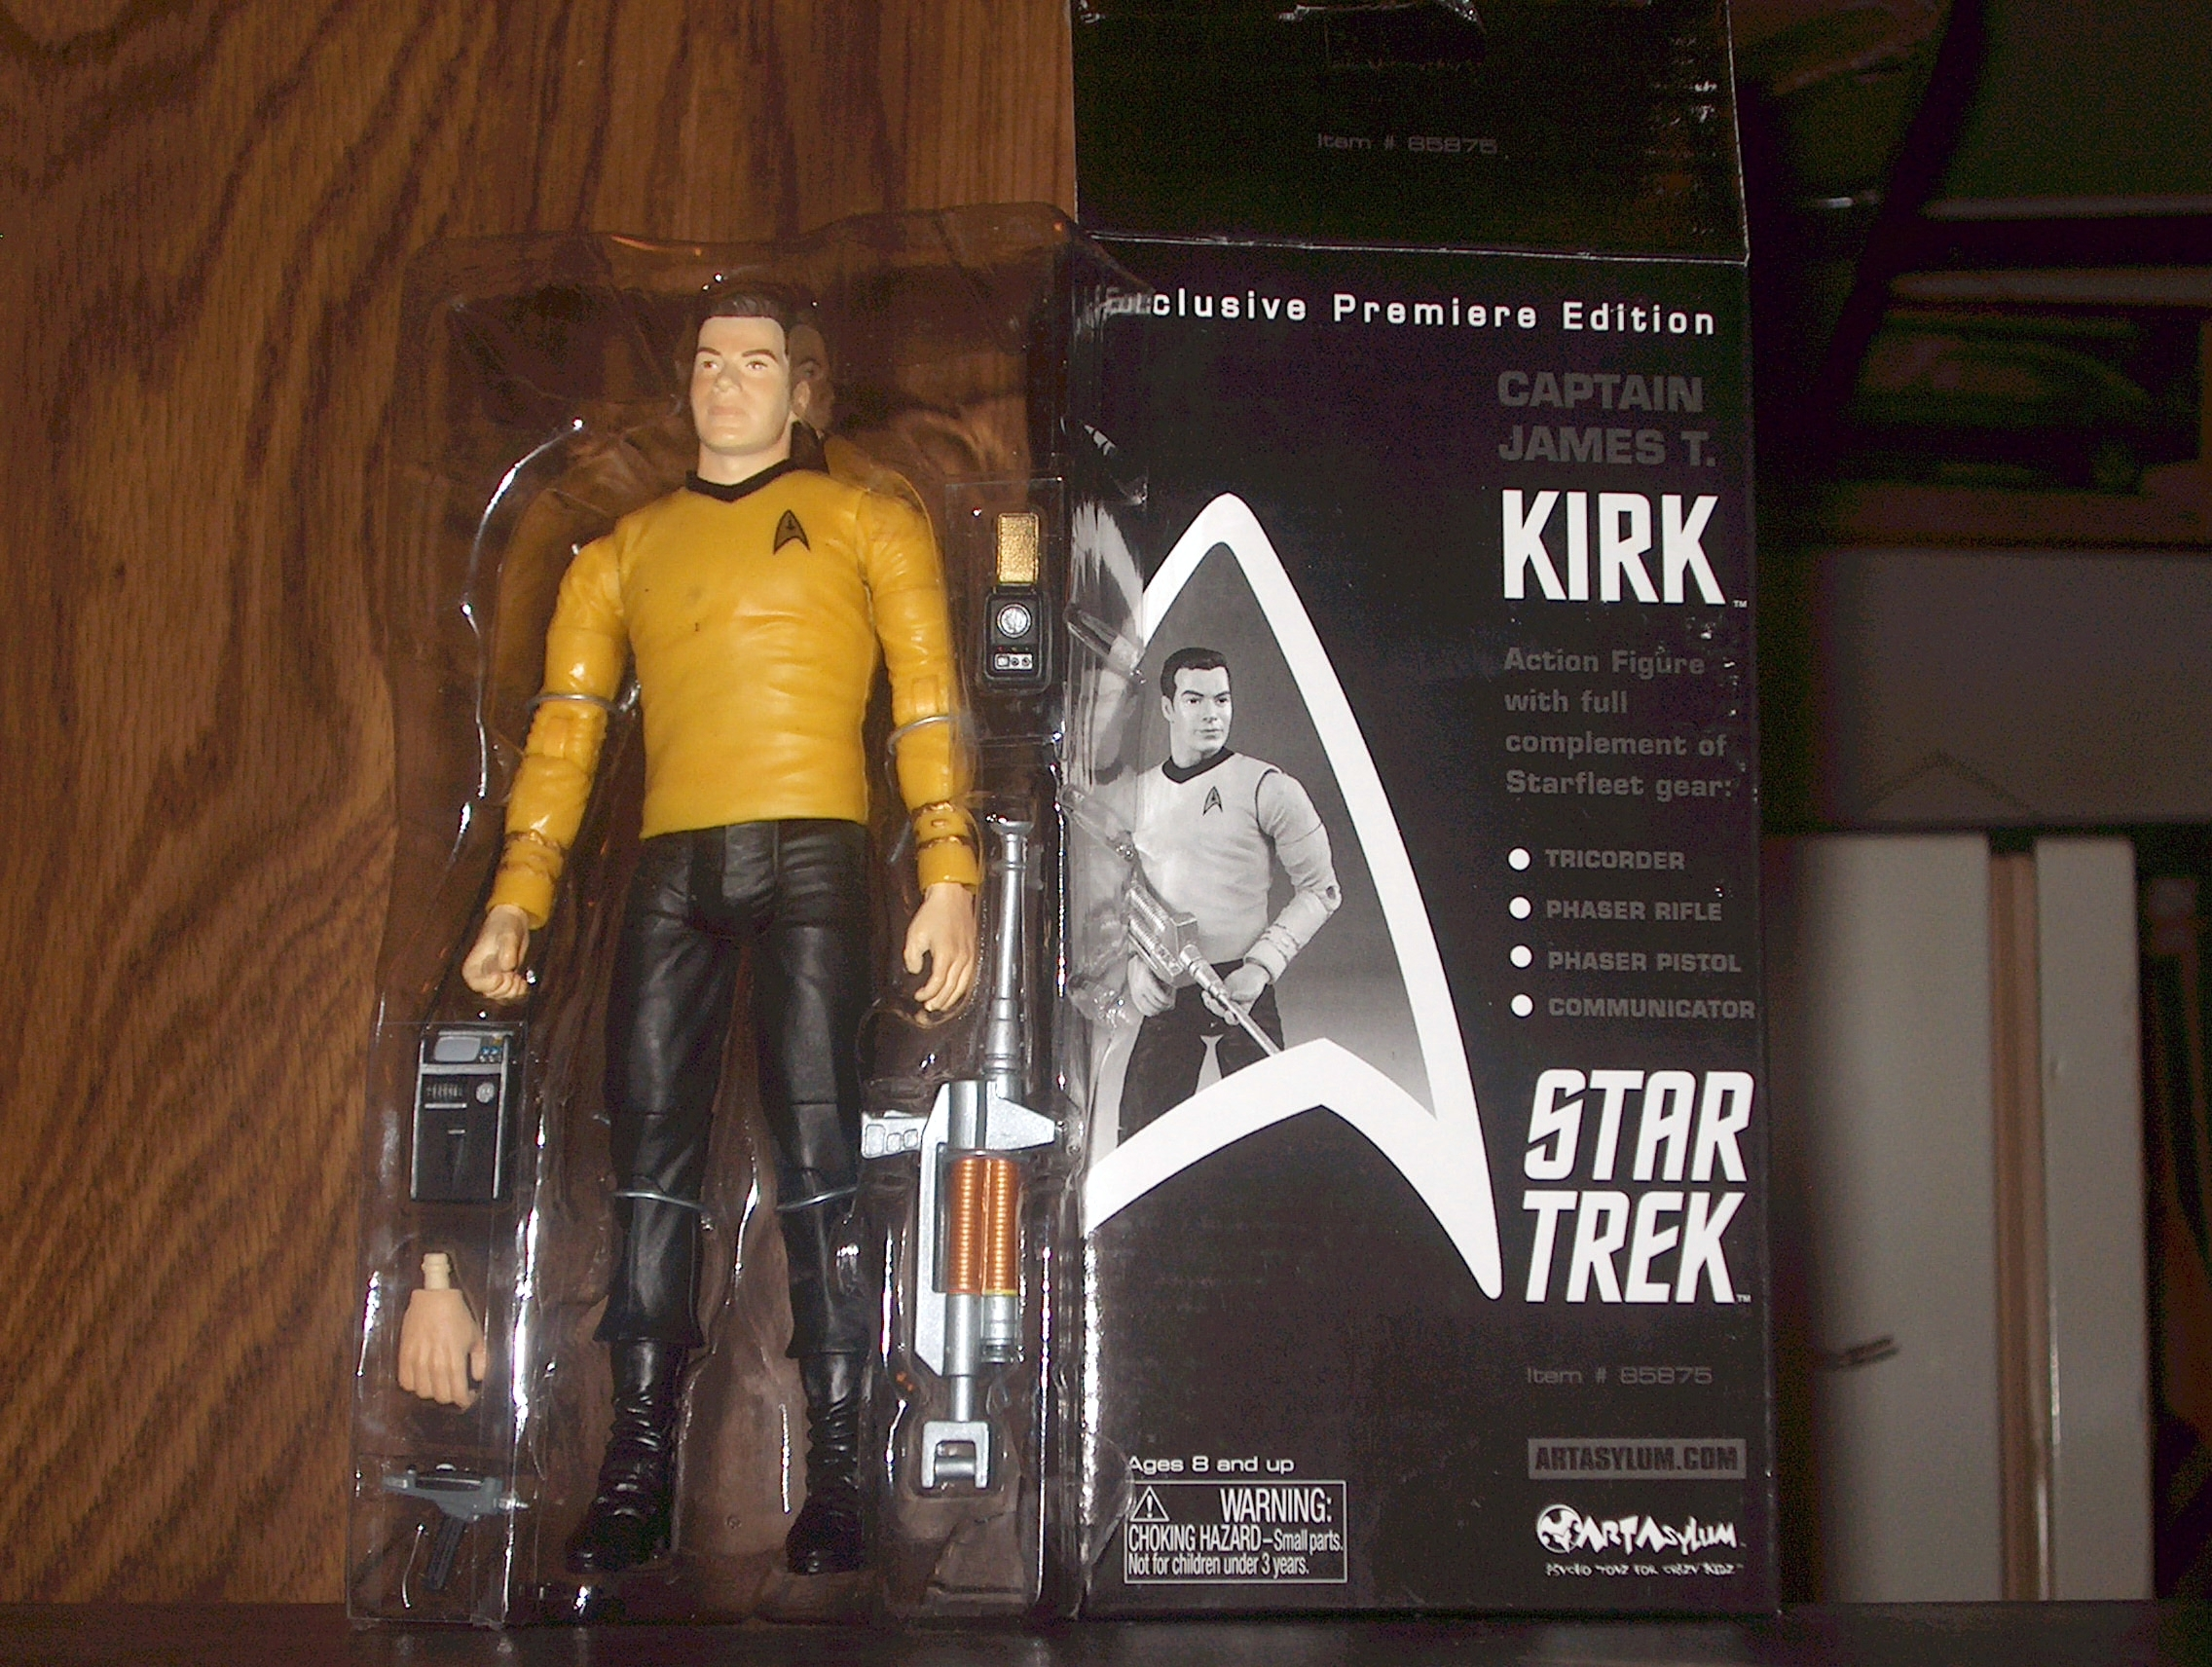 Captain James T. Kirk-Exclusive Premiere Edition